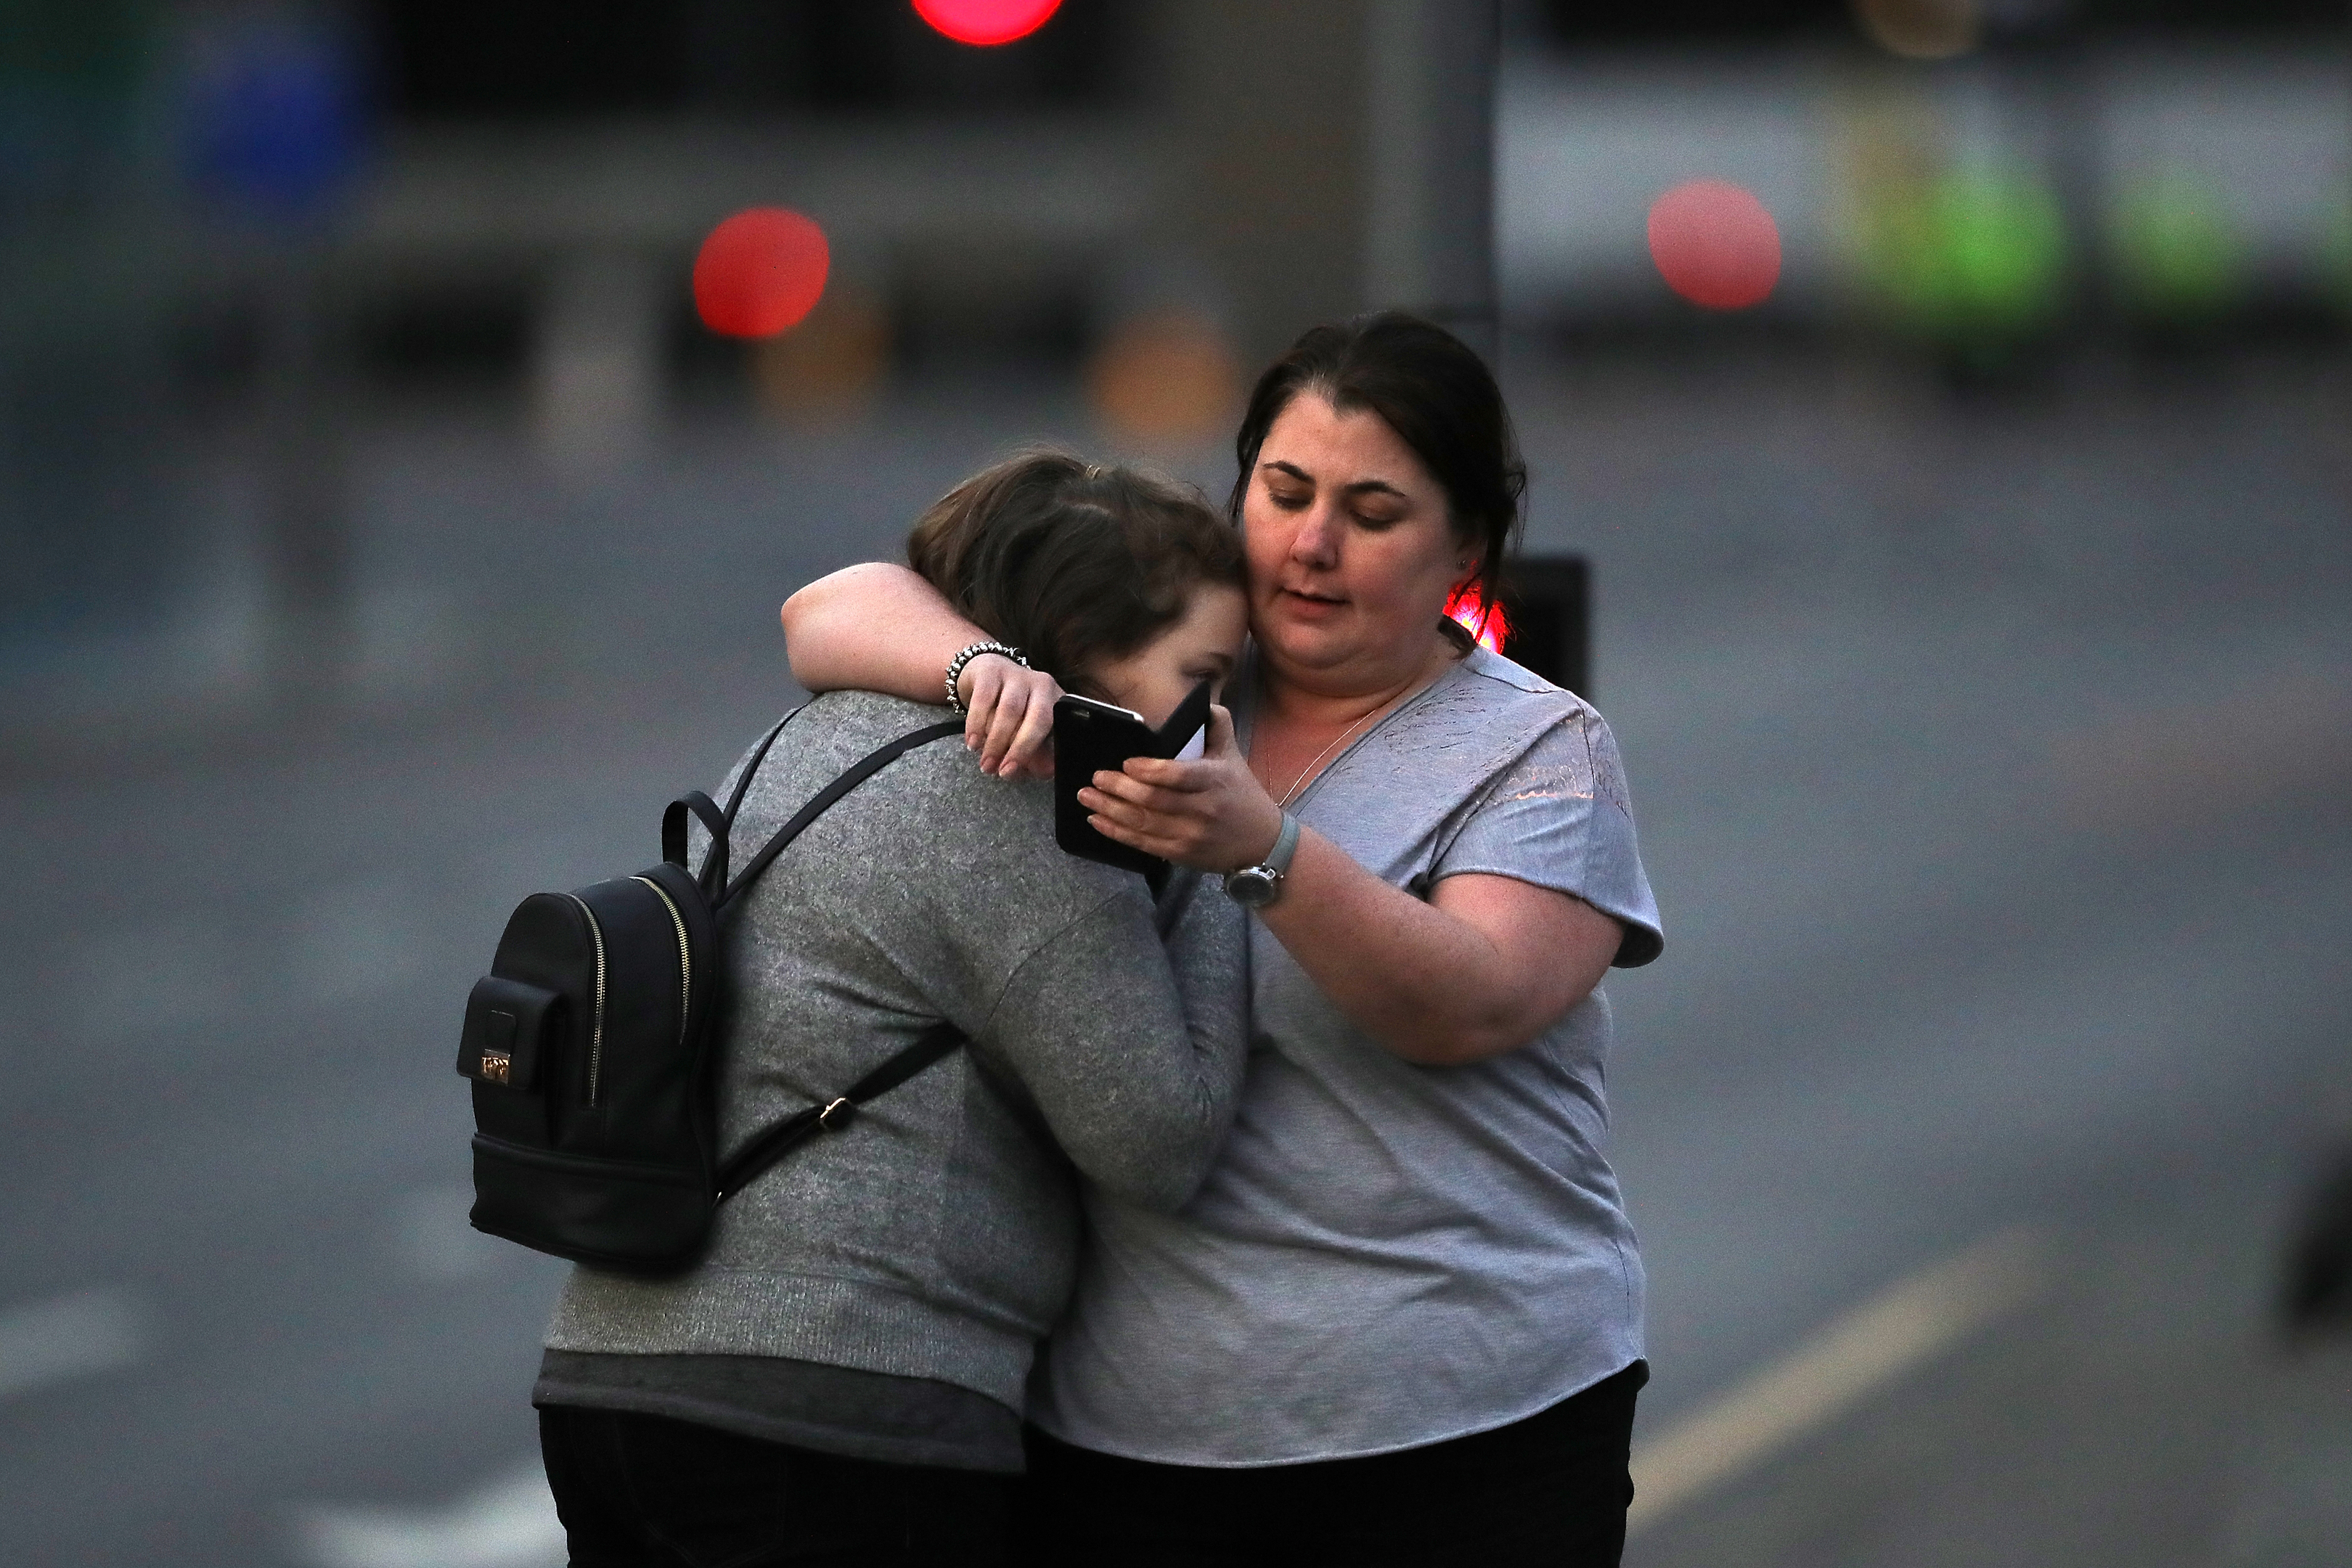 Ariana Grande concert attendees Vikki Baker and her daughter Charlotte, aged 13, leave the Park Inn where they were given refuge after last night's explosion.